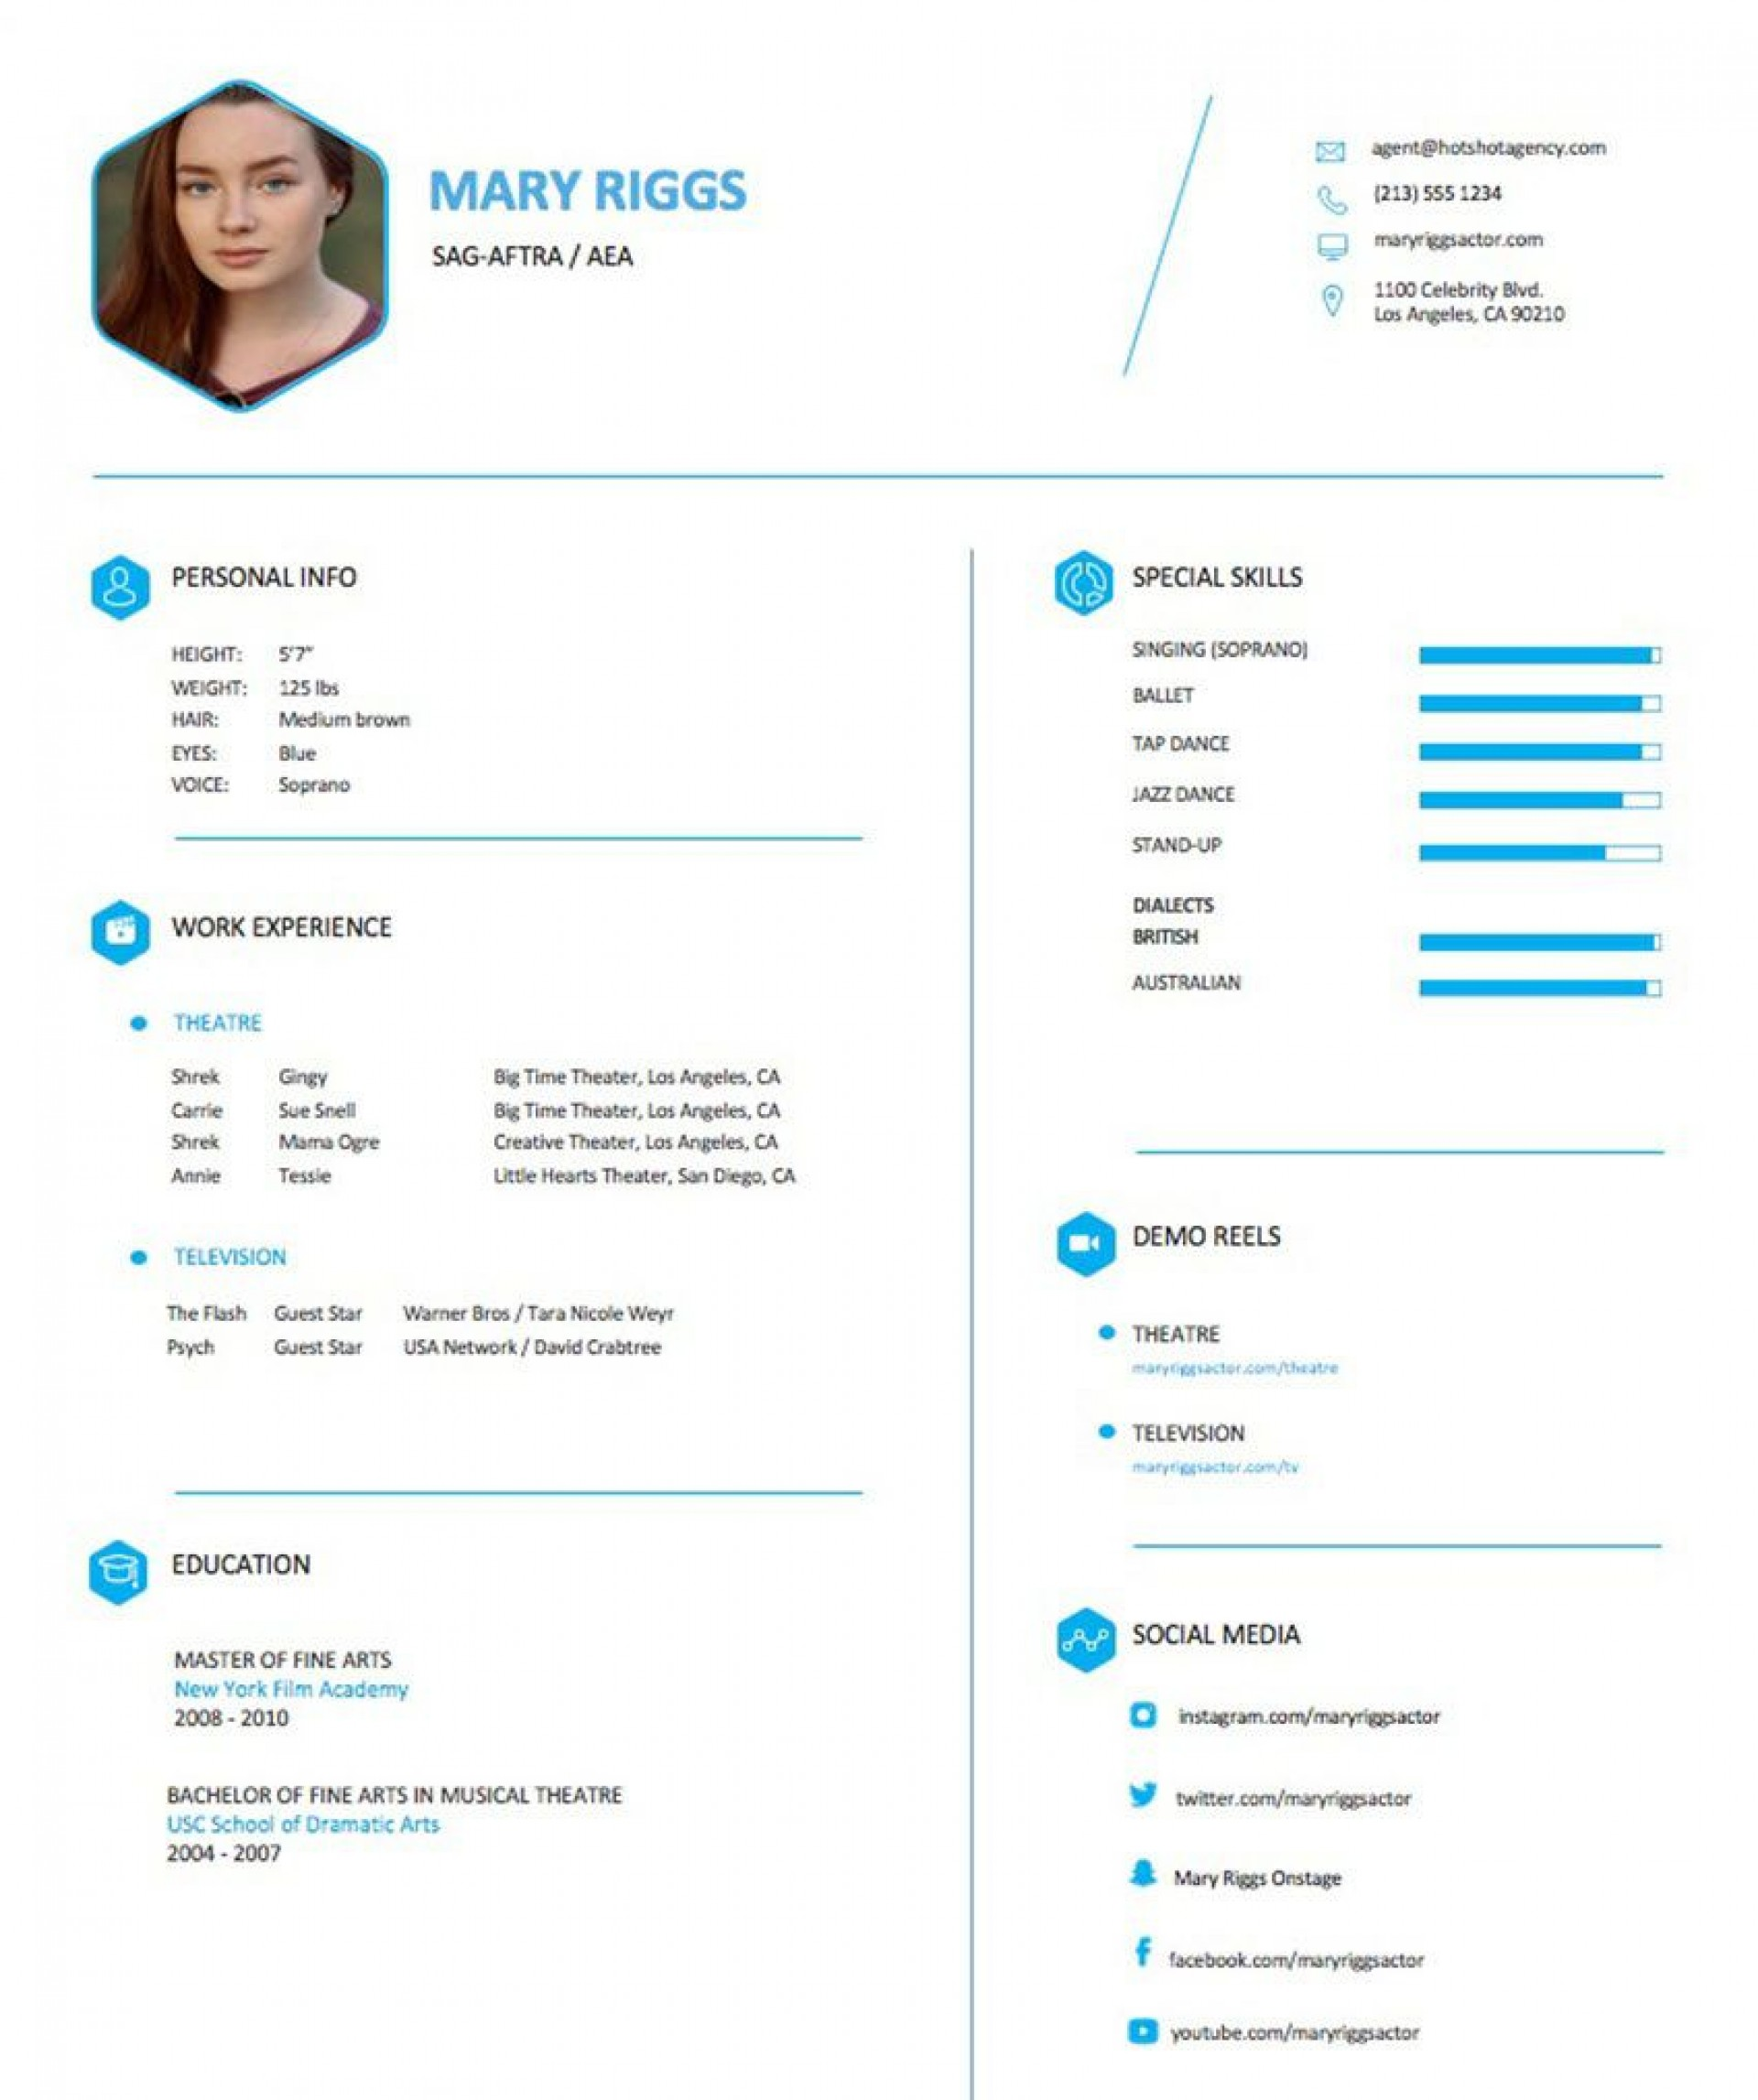 004 Frightening Musical Theater Resume Template Word High Definition  Theatre1920